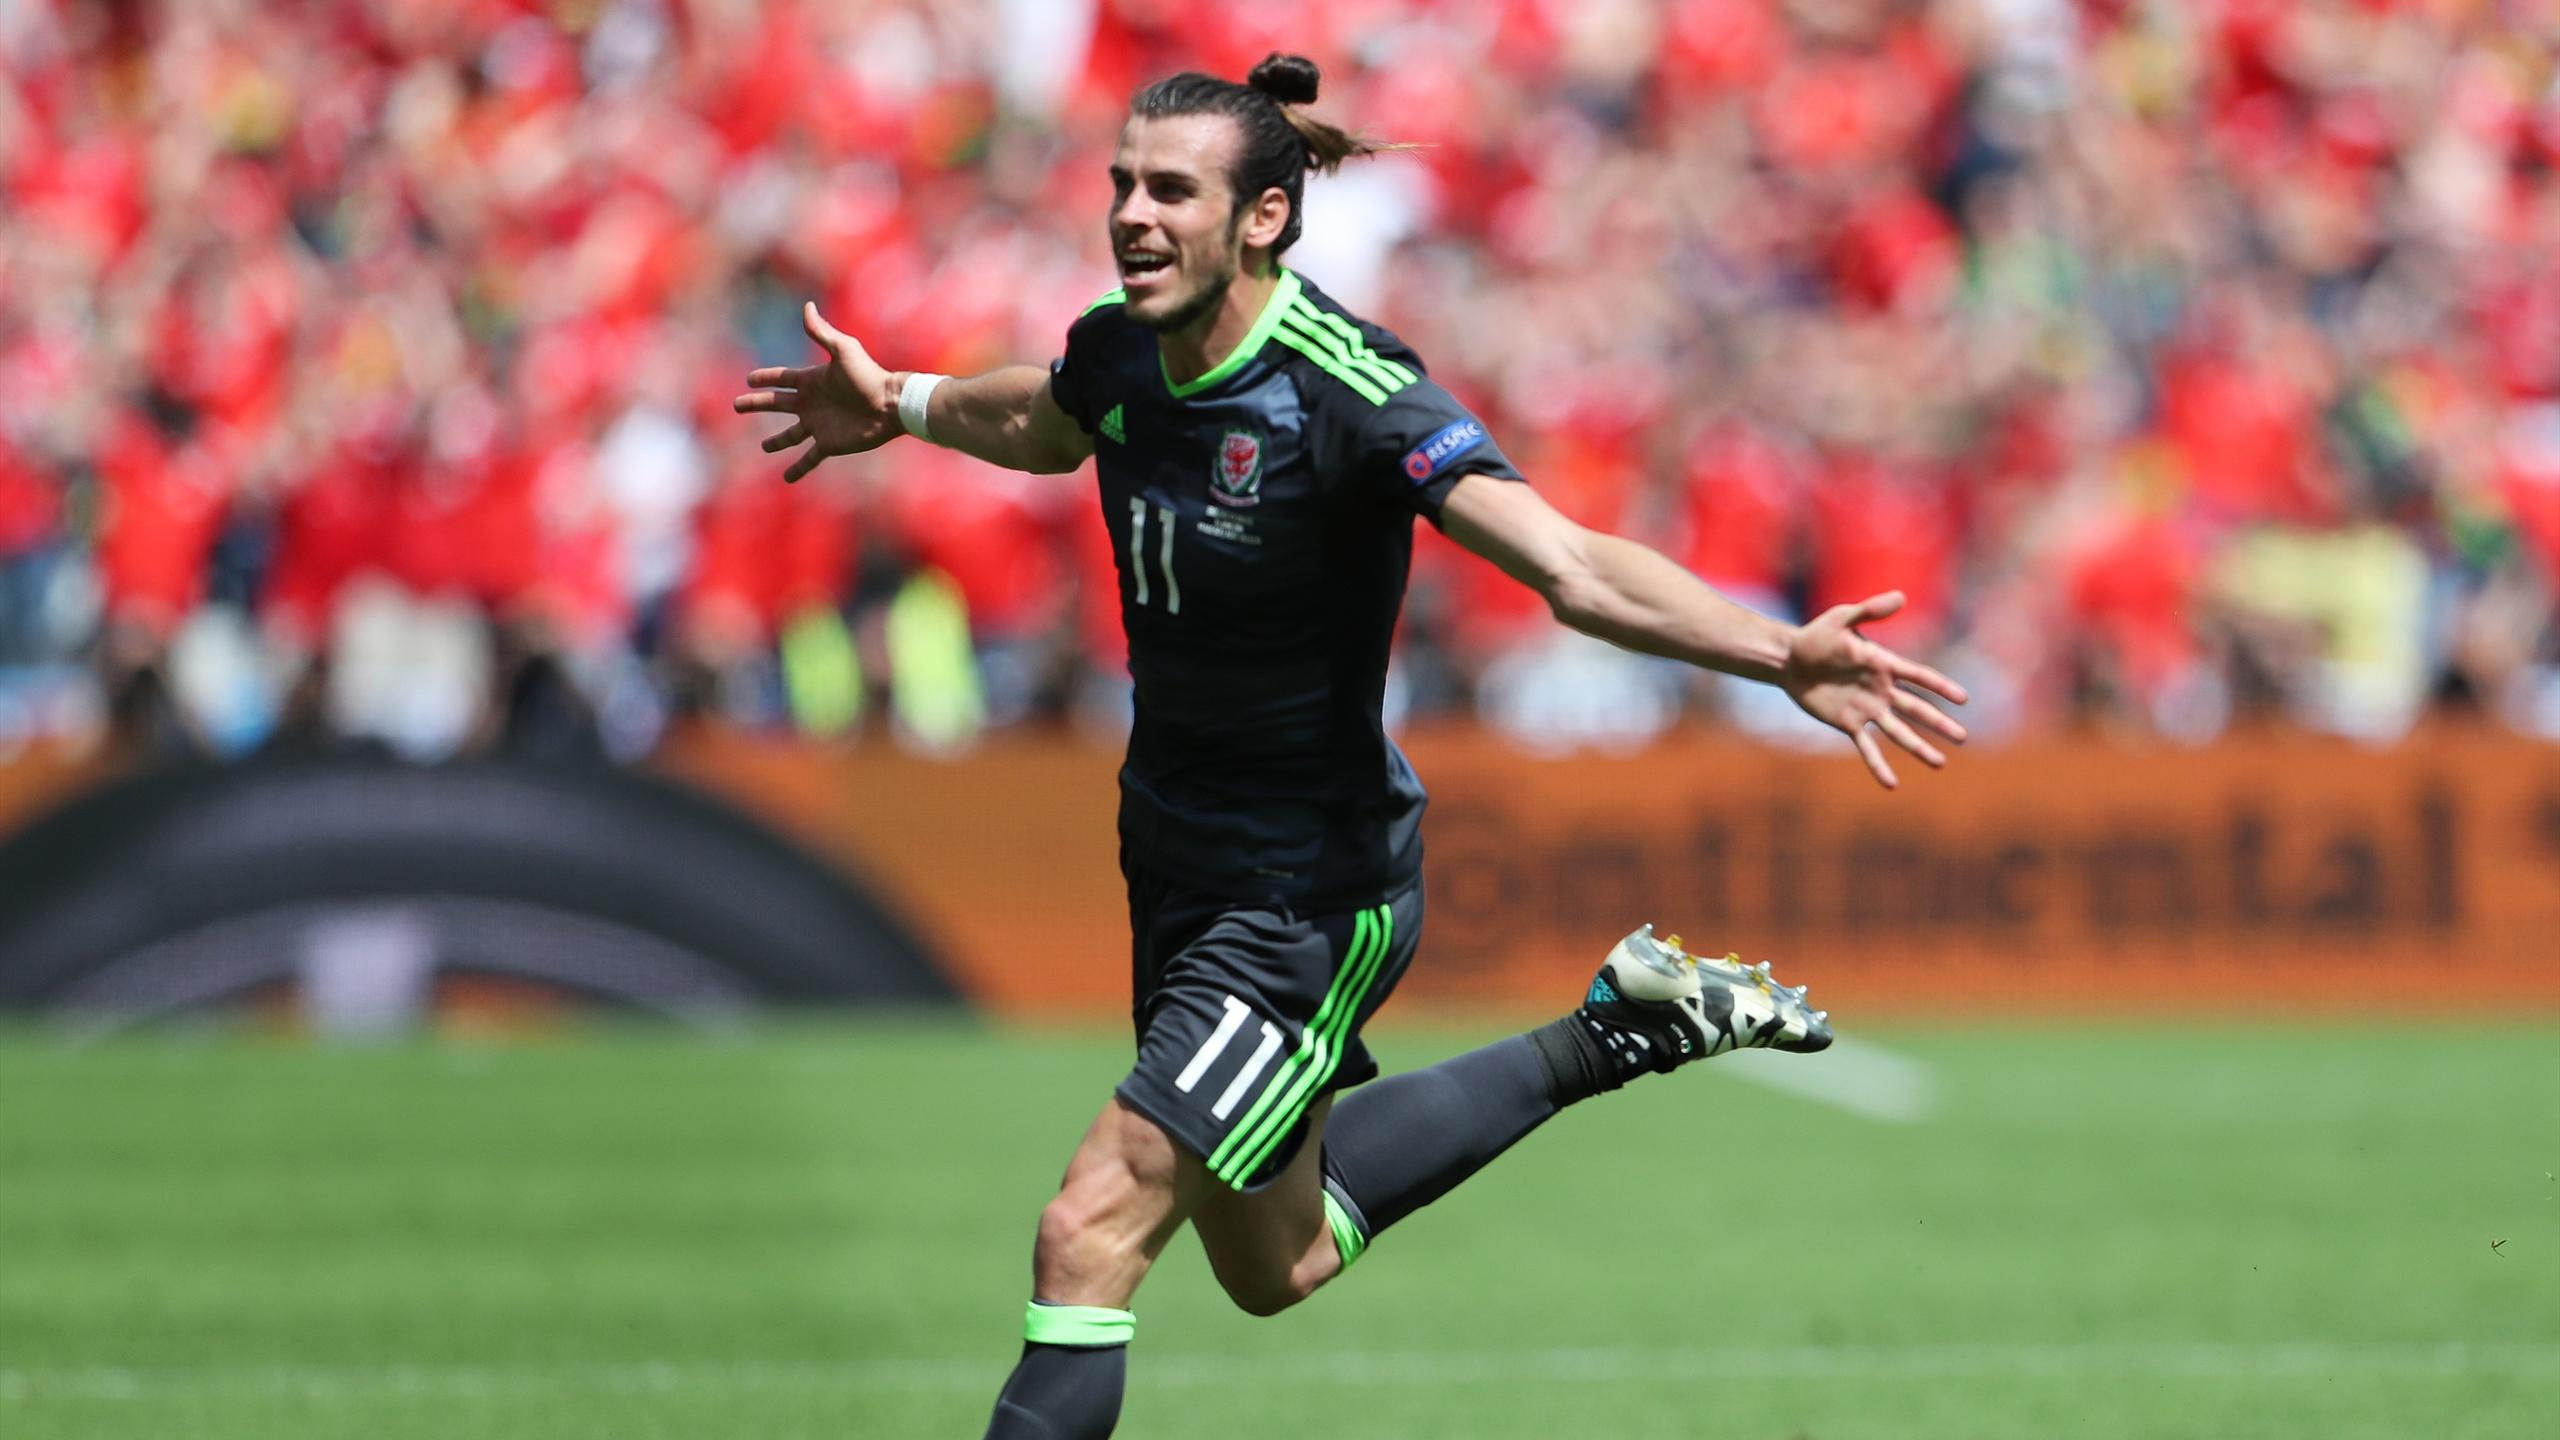 Wales' Gareth Bale celebrates after scoring their first goal